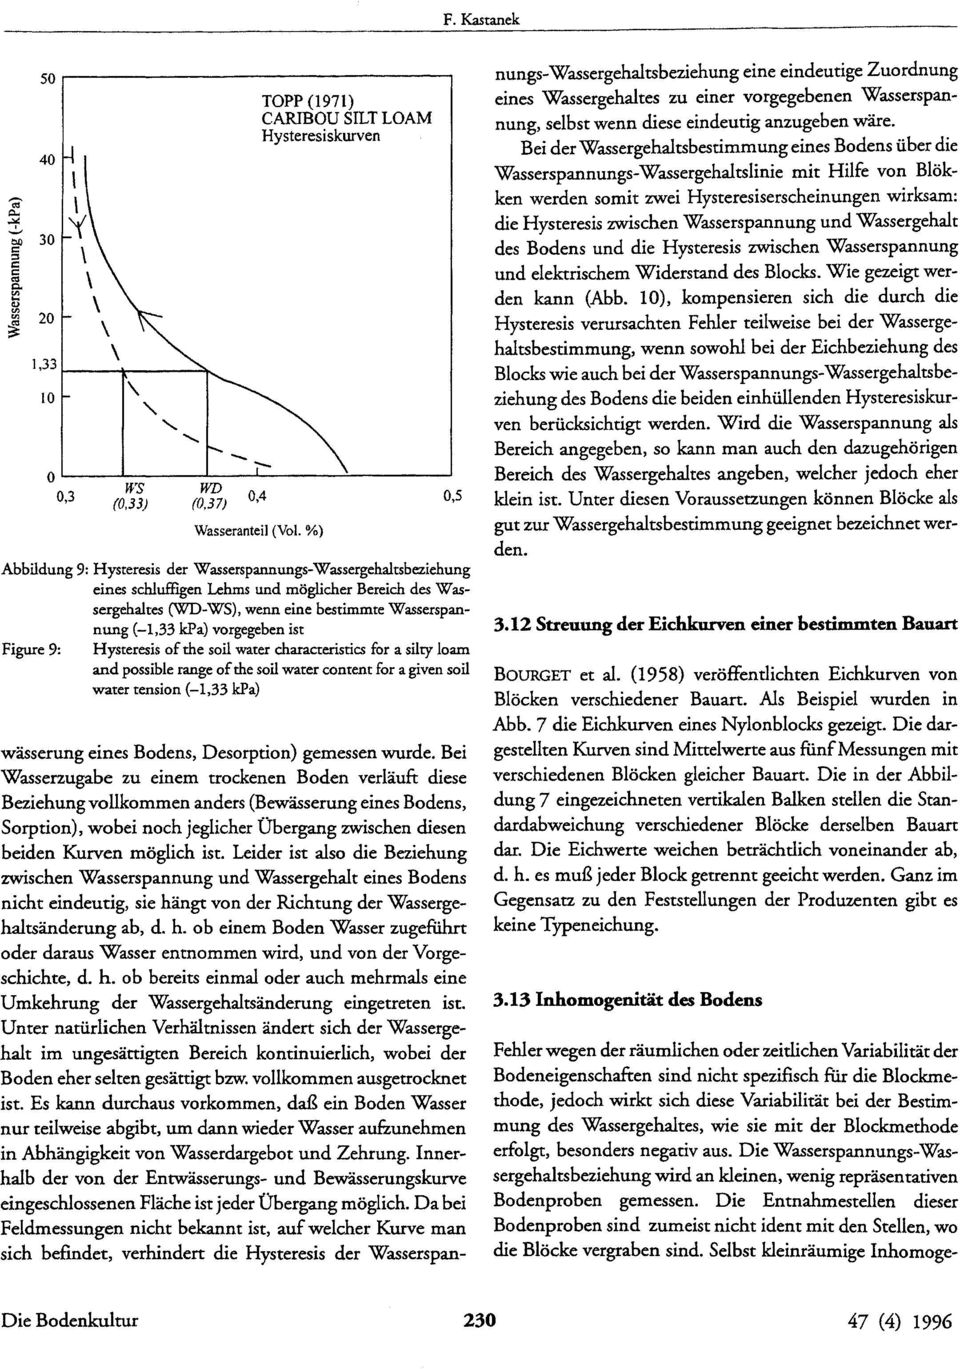 vorgegeben ist Figure 9: Hysteresis ofthe soil water characreristics for a silty loam and possib1erange ofthe soil water contenr for a given soil water tension (-1,33 kpa) wässerung eines Bodens,